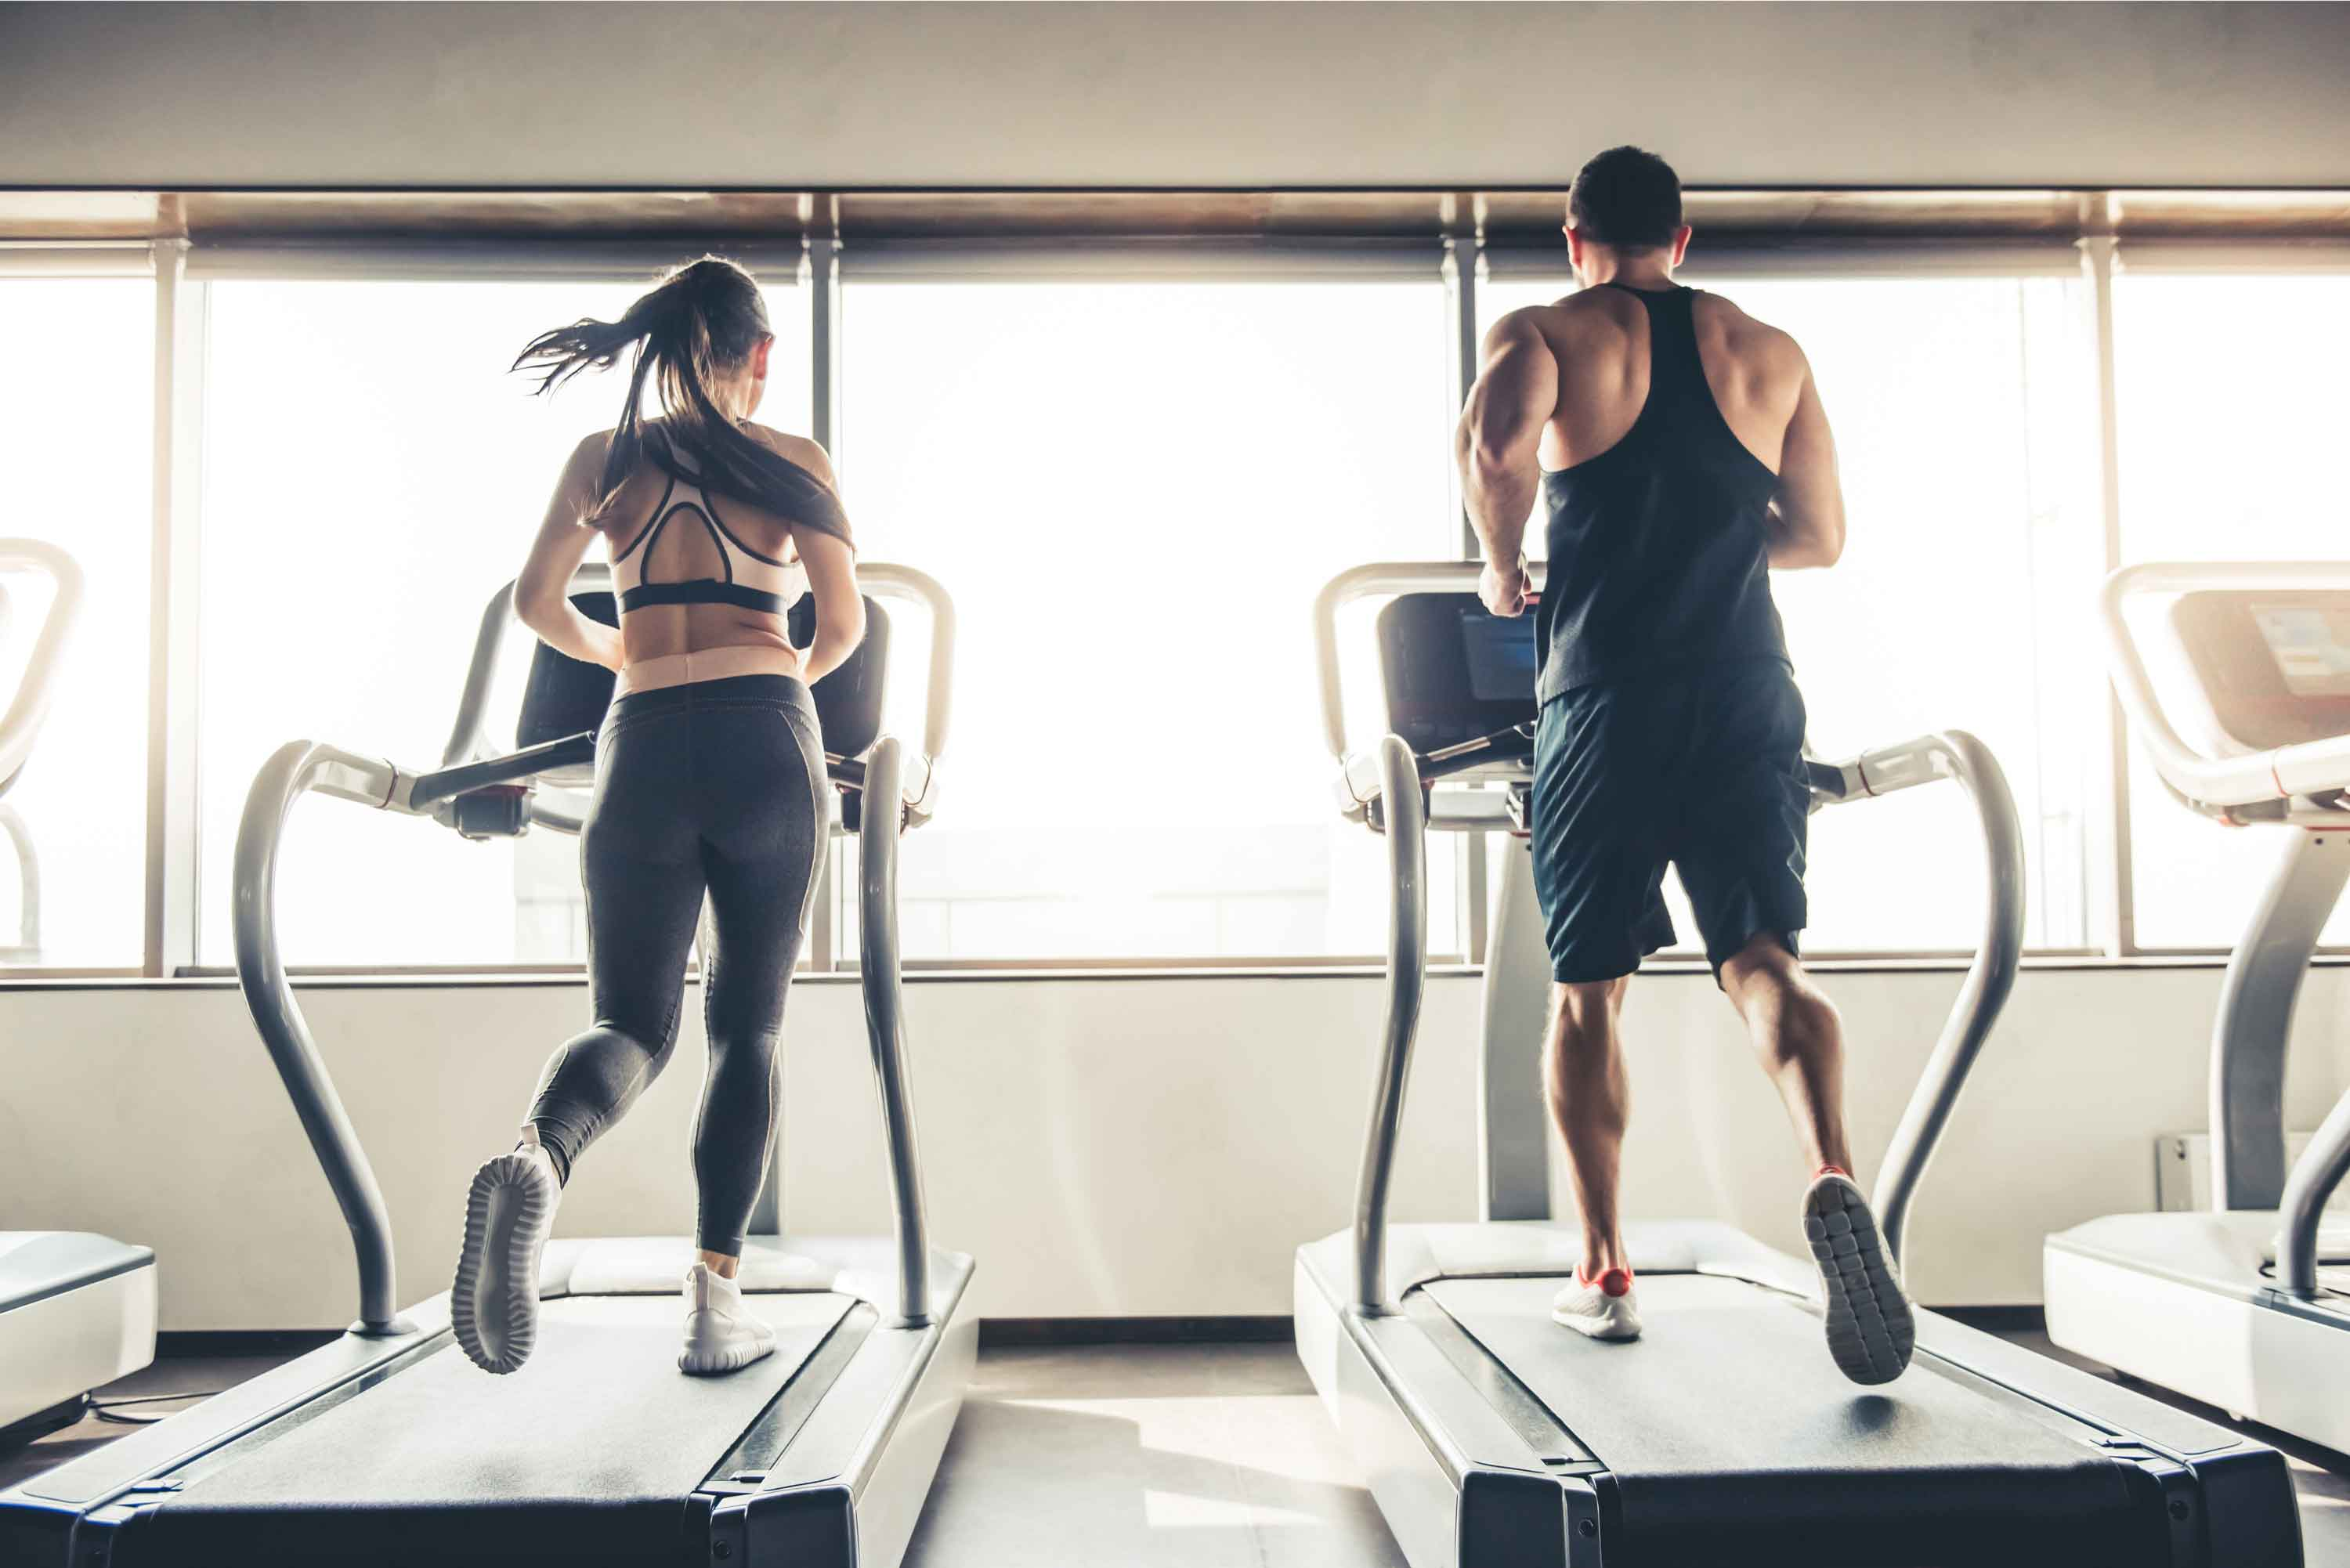 Couple on Treadmill Working Out Together